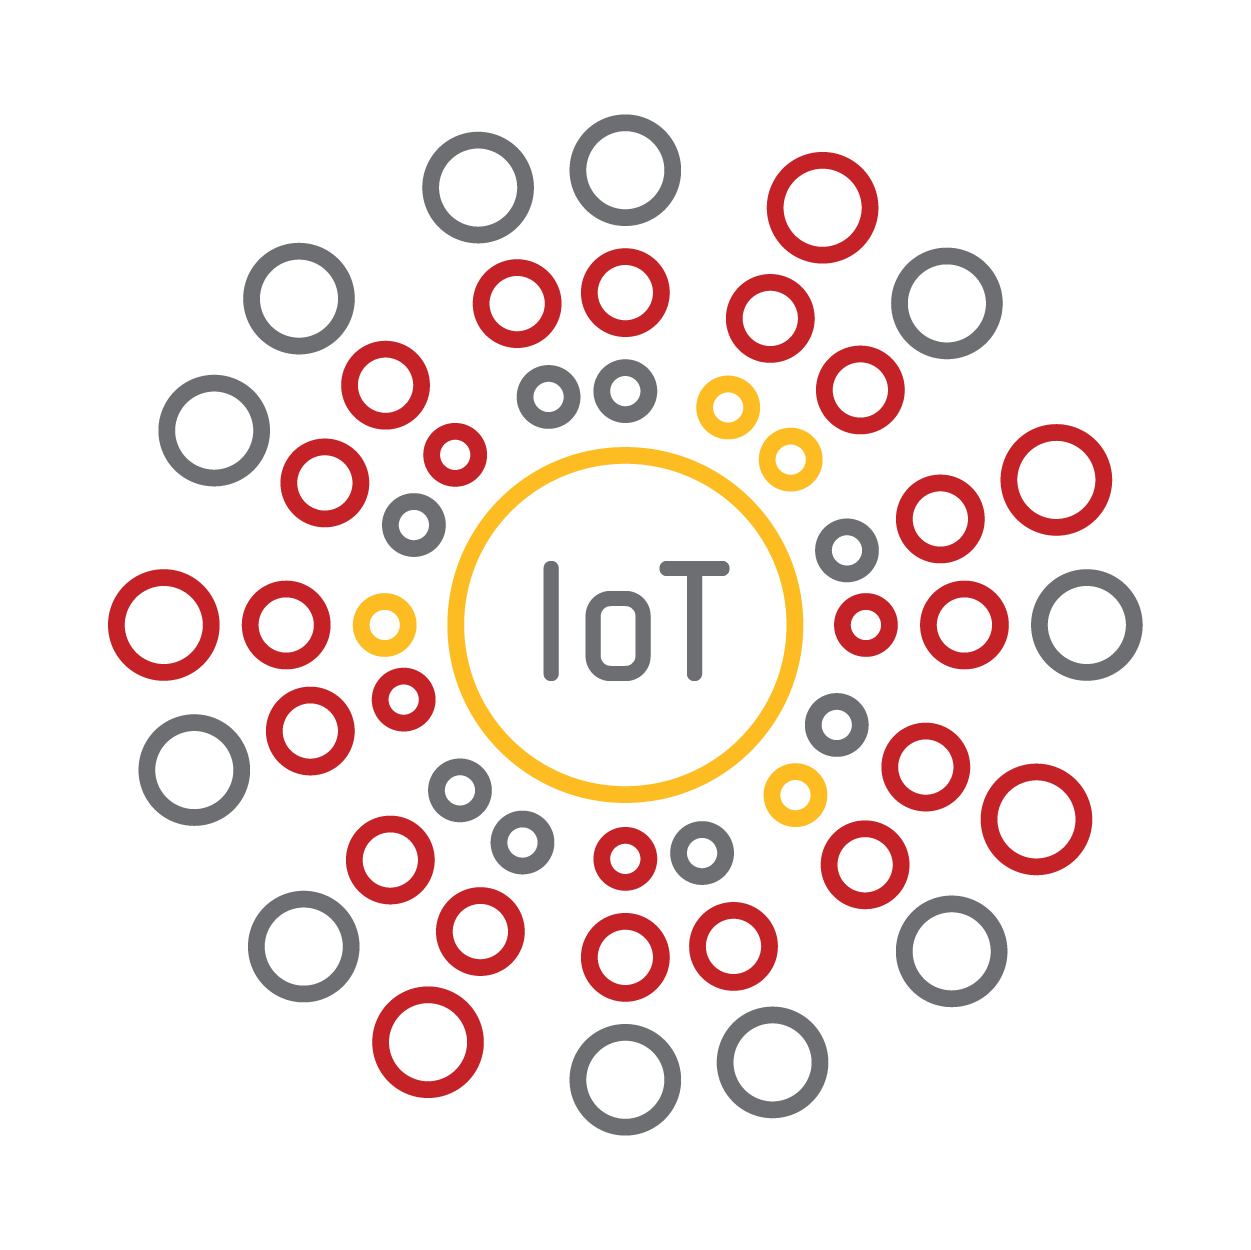 iot-security-assessment